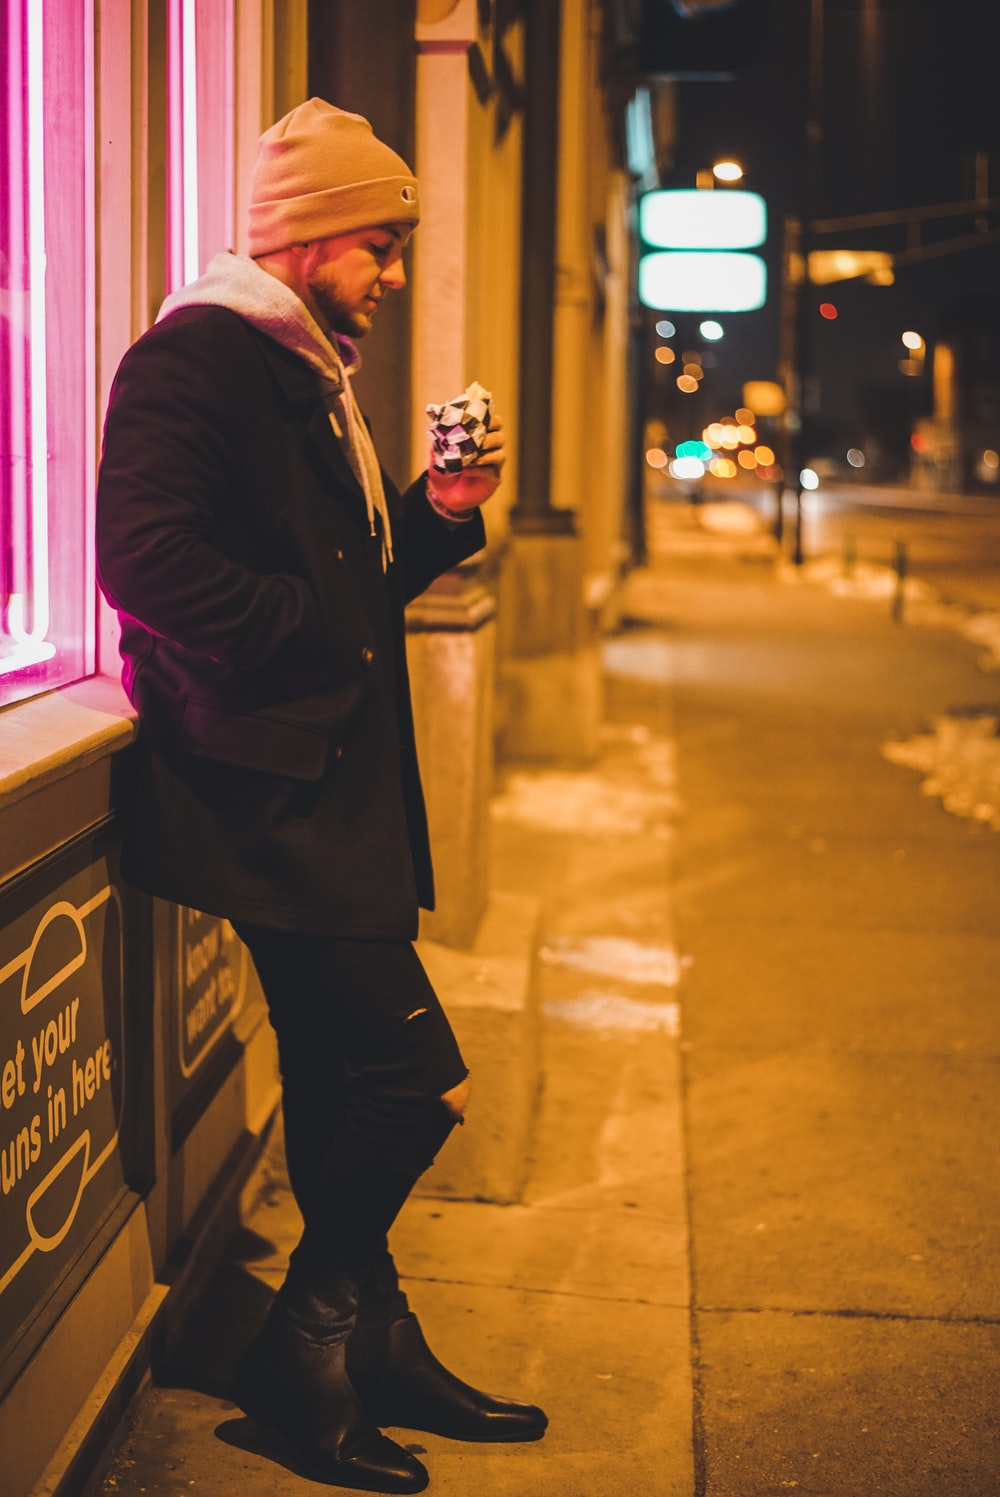 man leaning on wall while holding pack during night